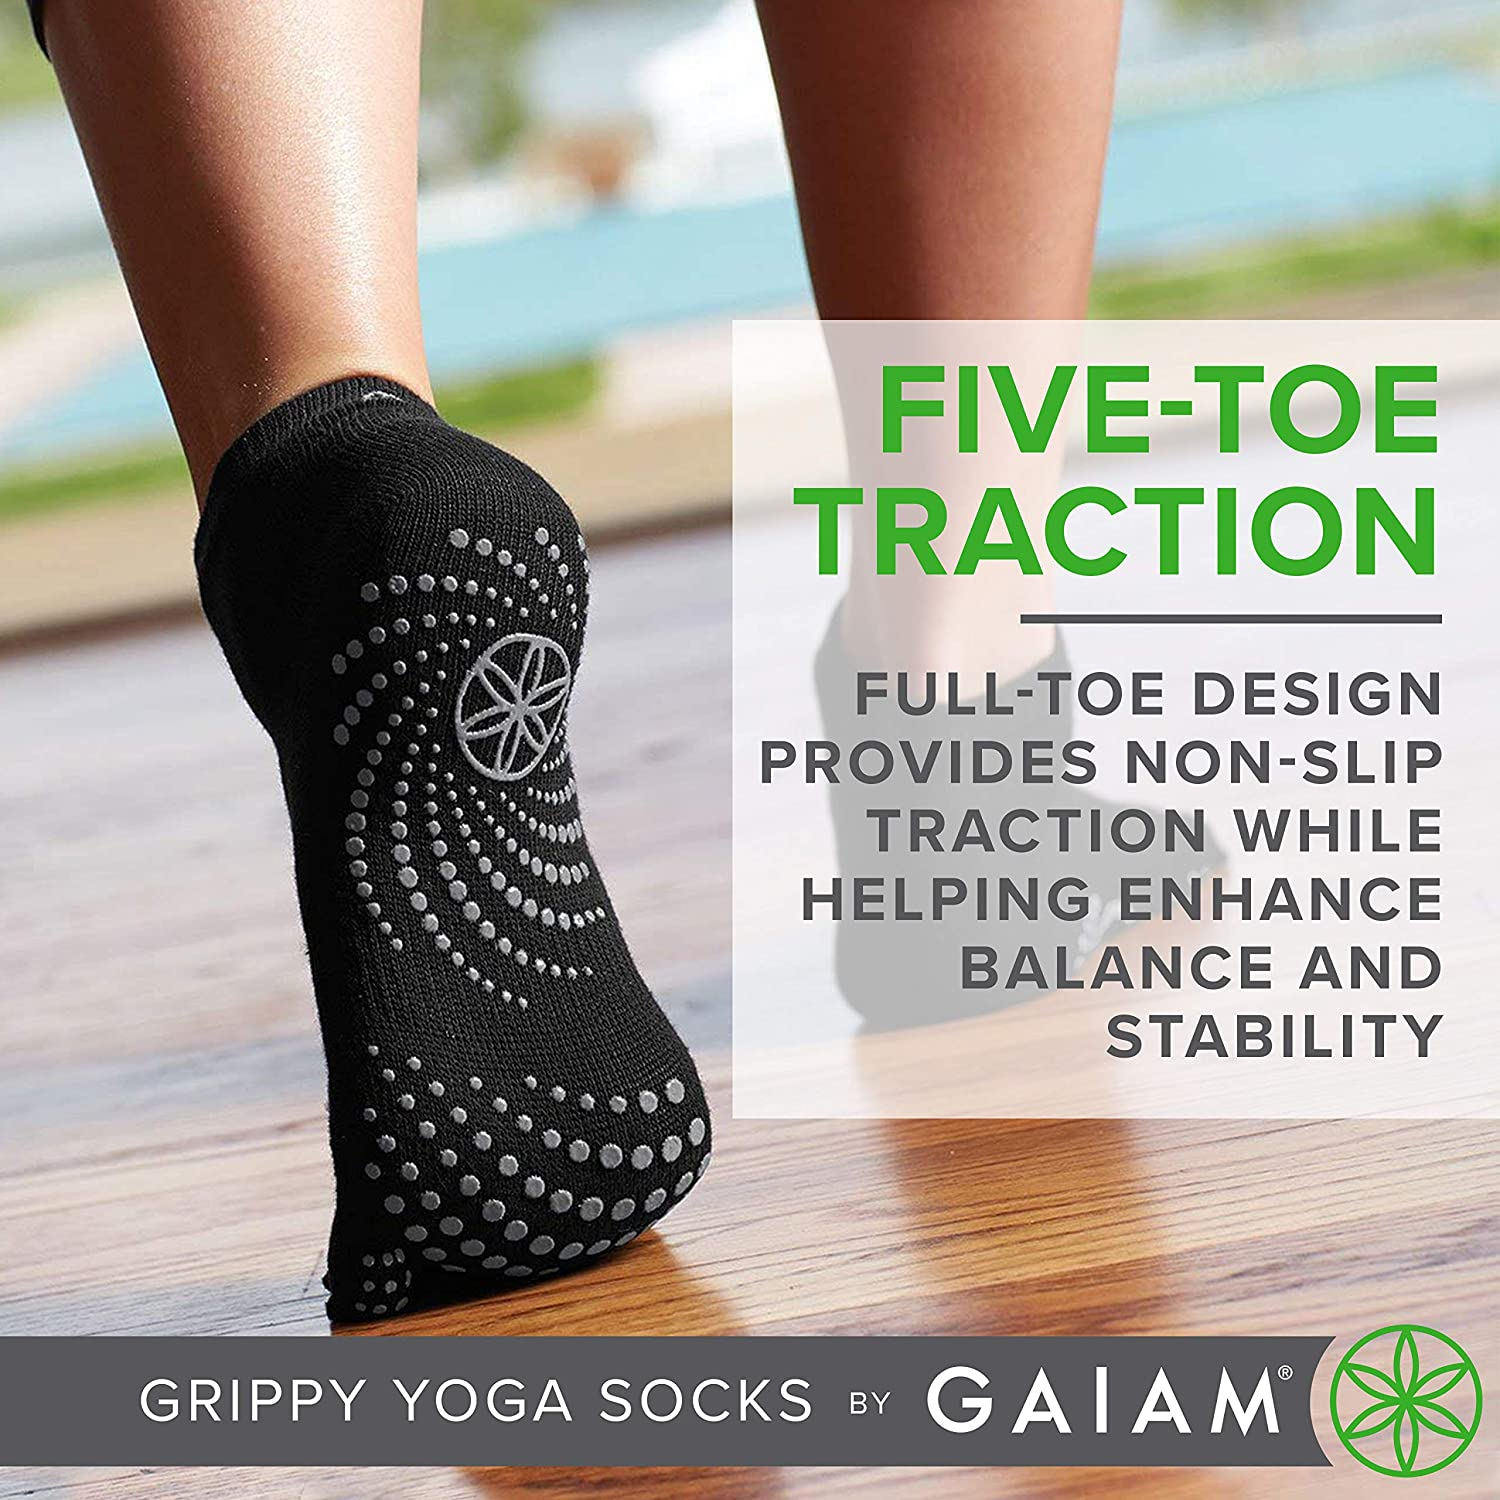 Pink Plaster//Mint Pilates 2 Pack Non Slip Grip Accessories for Standard or Hot Yoga Barre Ballet or at Home for Women /& Men Gaiam Grippy Yoga Socks